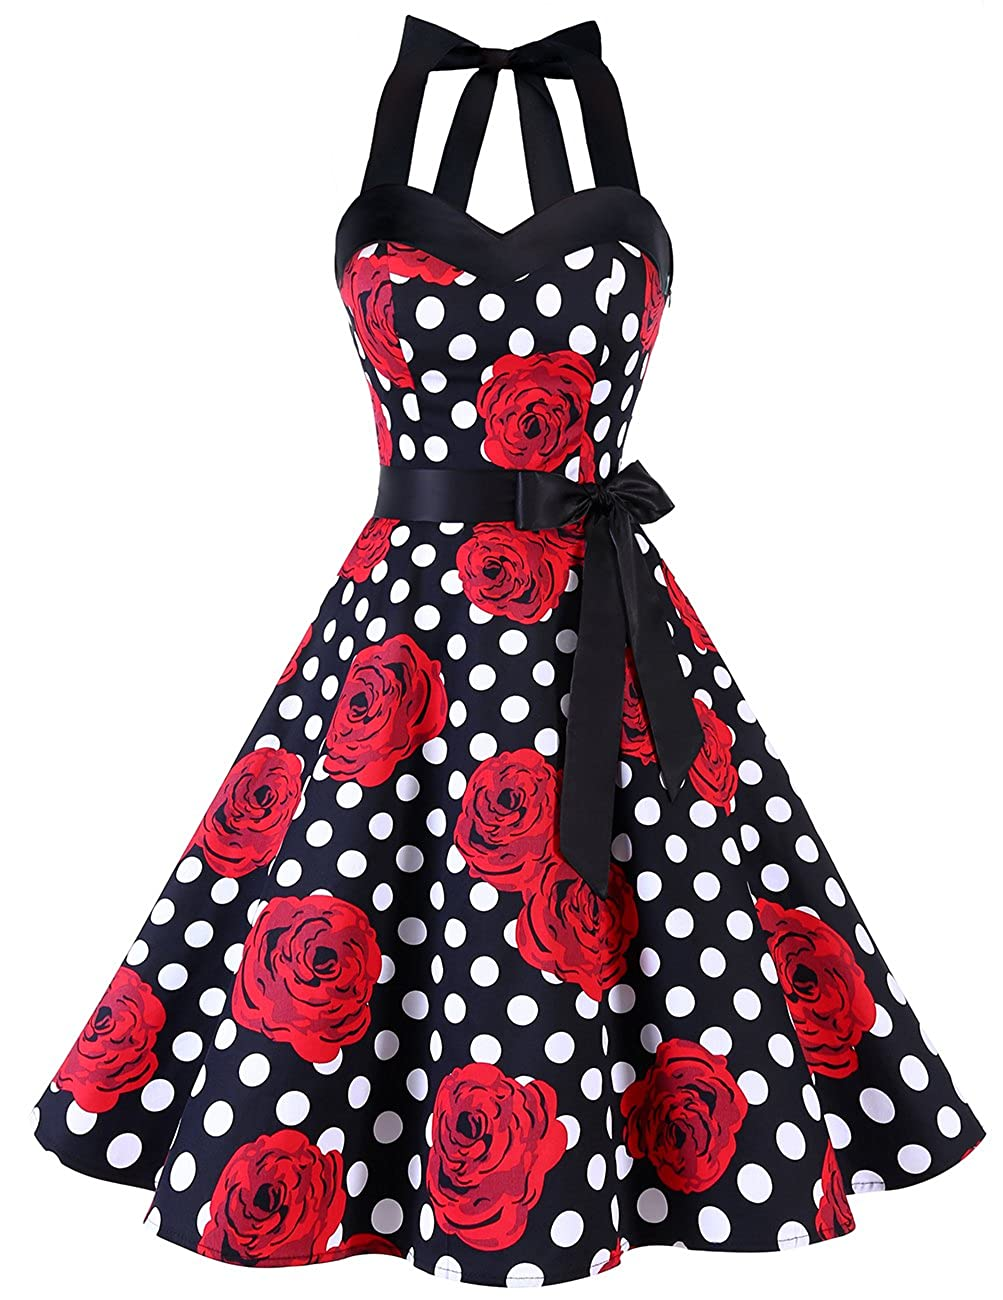 TALLA XXL. Dresstells® Halter 50s Rockabilly Polka Dots Audrey Dress Retro Cocktail Dress Black Red Rose Dot XXL